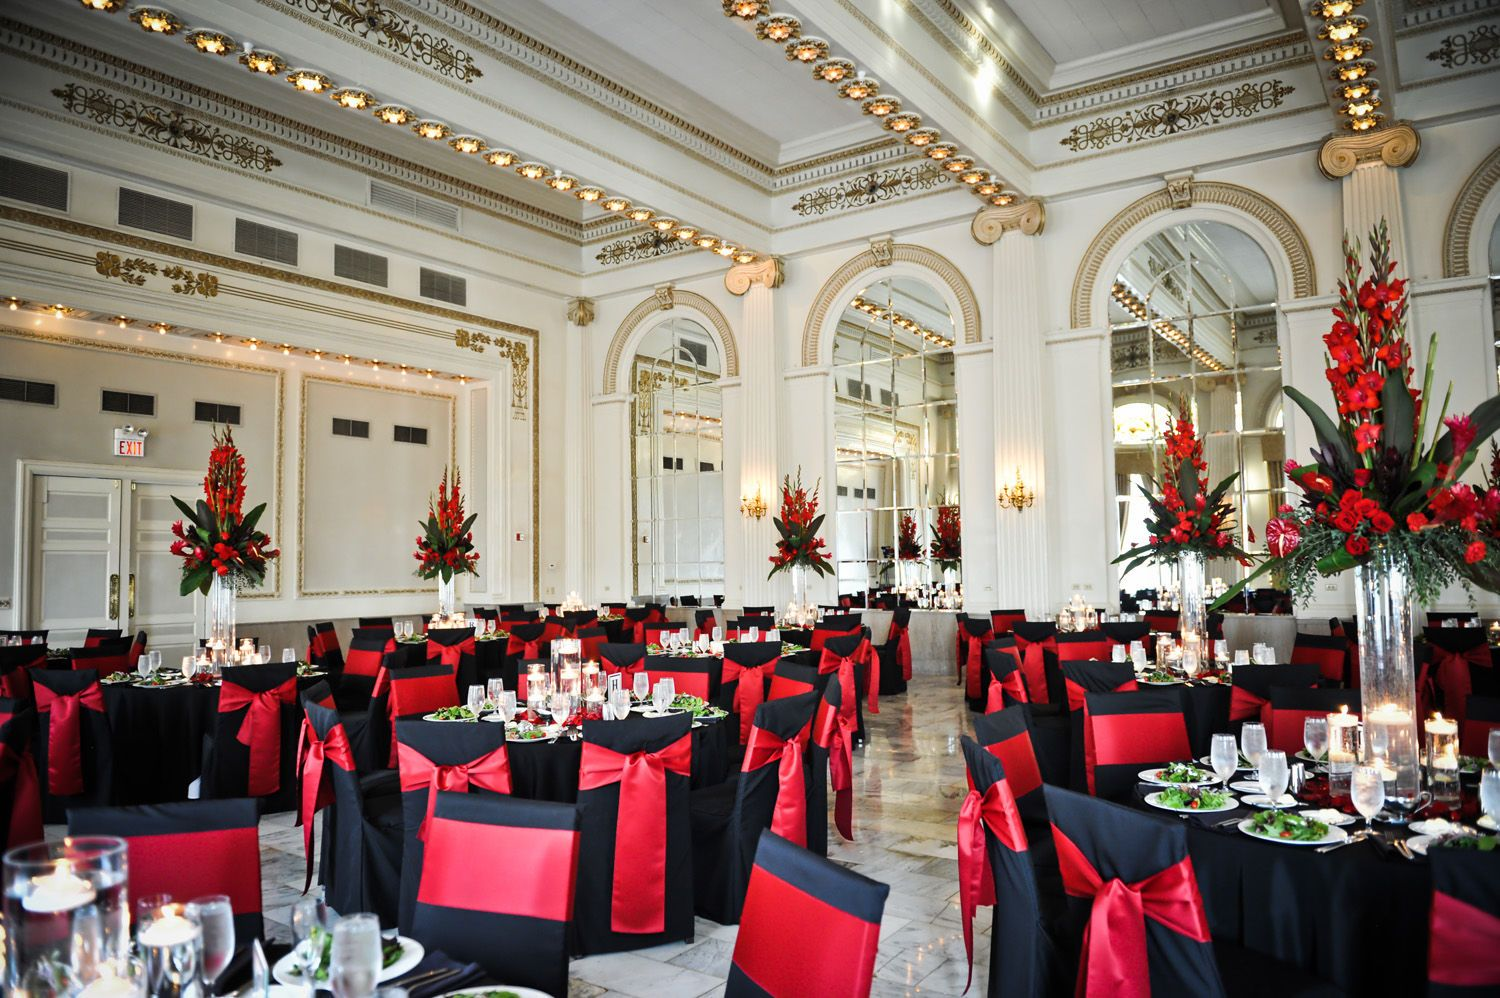 Ball room at the westin hotel columbus ohio for the bollman family griffins sells beautiful custom wedding floral arrangements serving locally in columbus ohio junglespirit Gallery